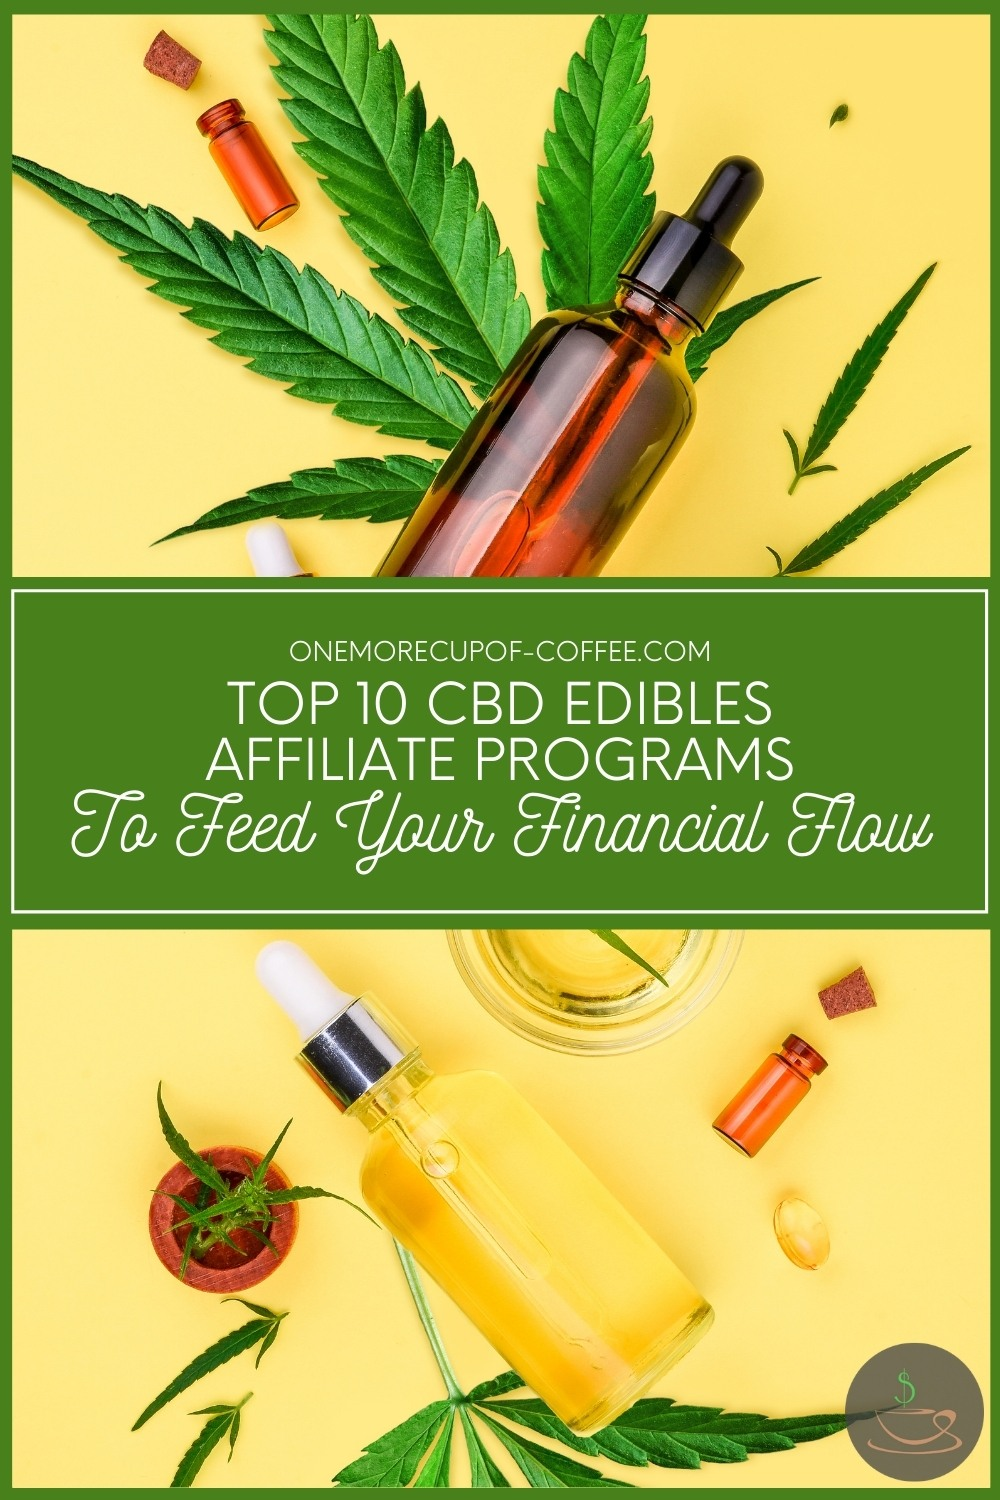 """top view image of a clear bottle and colored bottle with dropper on its side, with cannabis leaves and a couple of orange bottle around it; with text overlay in green banner """"Top 10 CBD Edibles Affiliate Programs To Feed Your Financial Flow"""""""